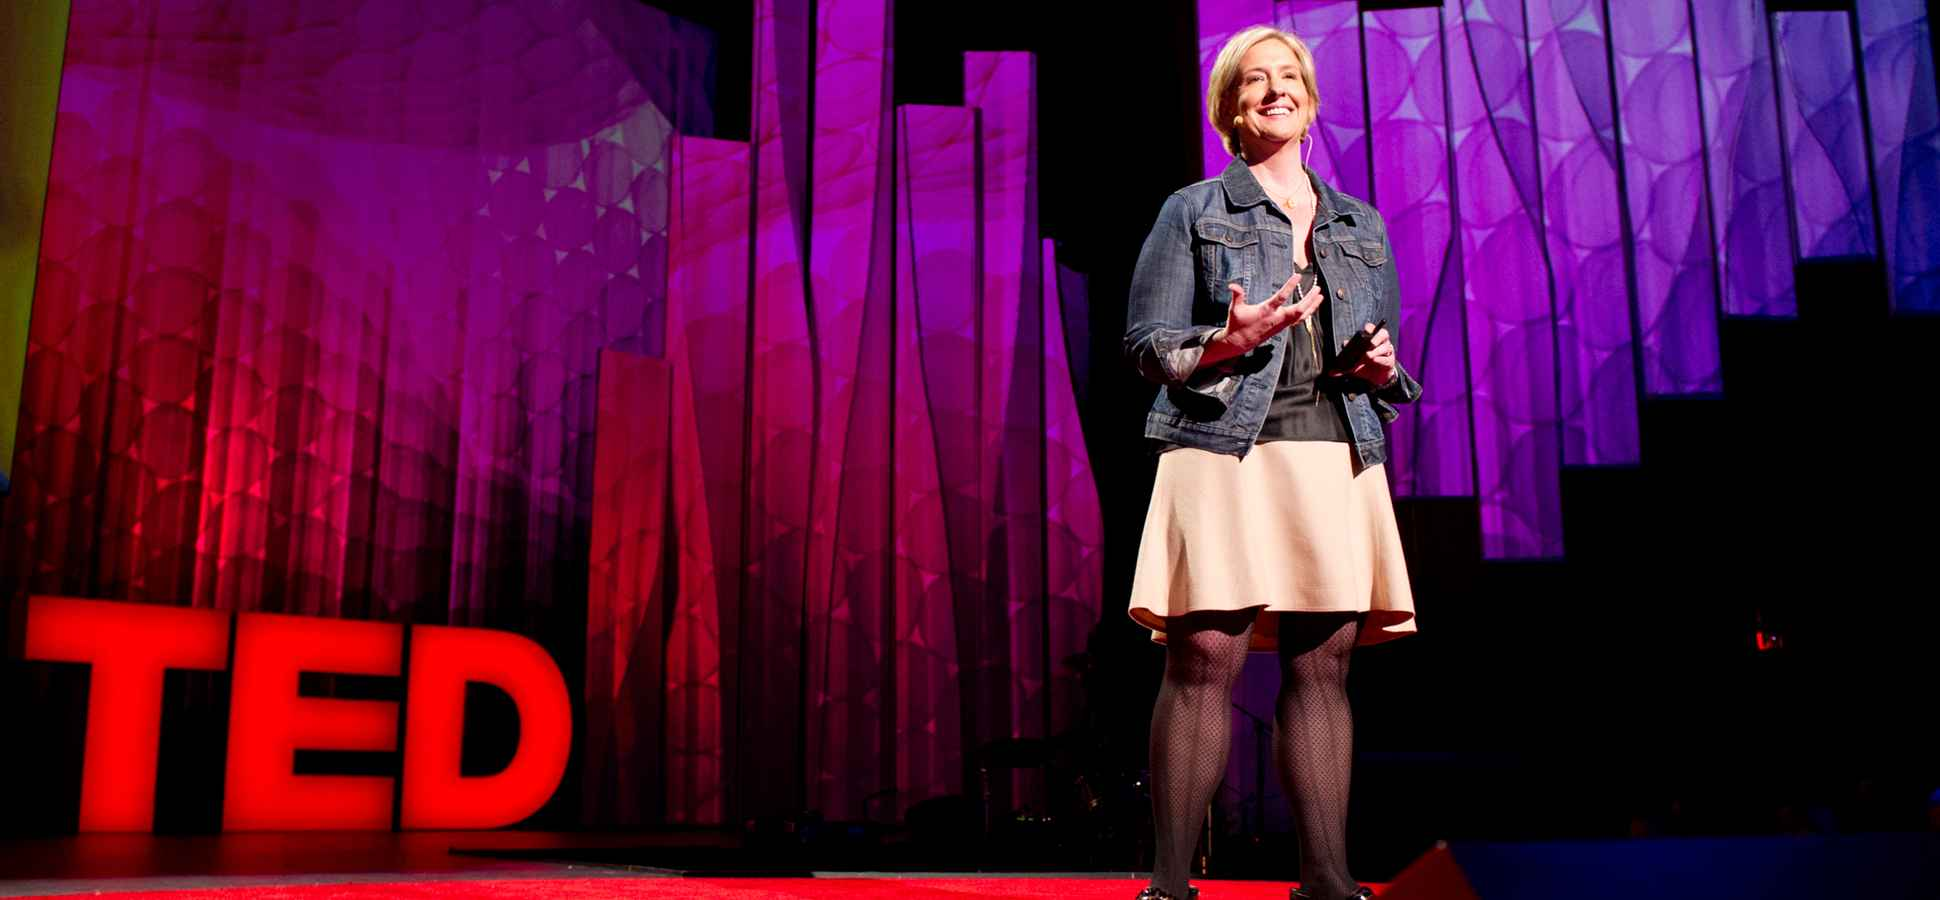 10 TED Talks to Make You a Better You